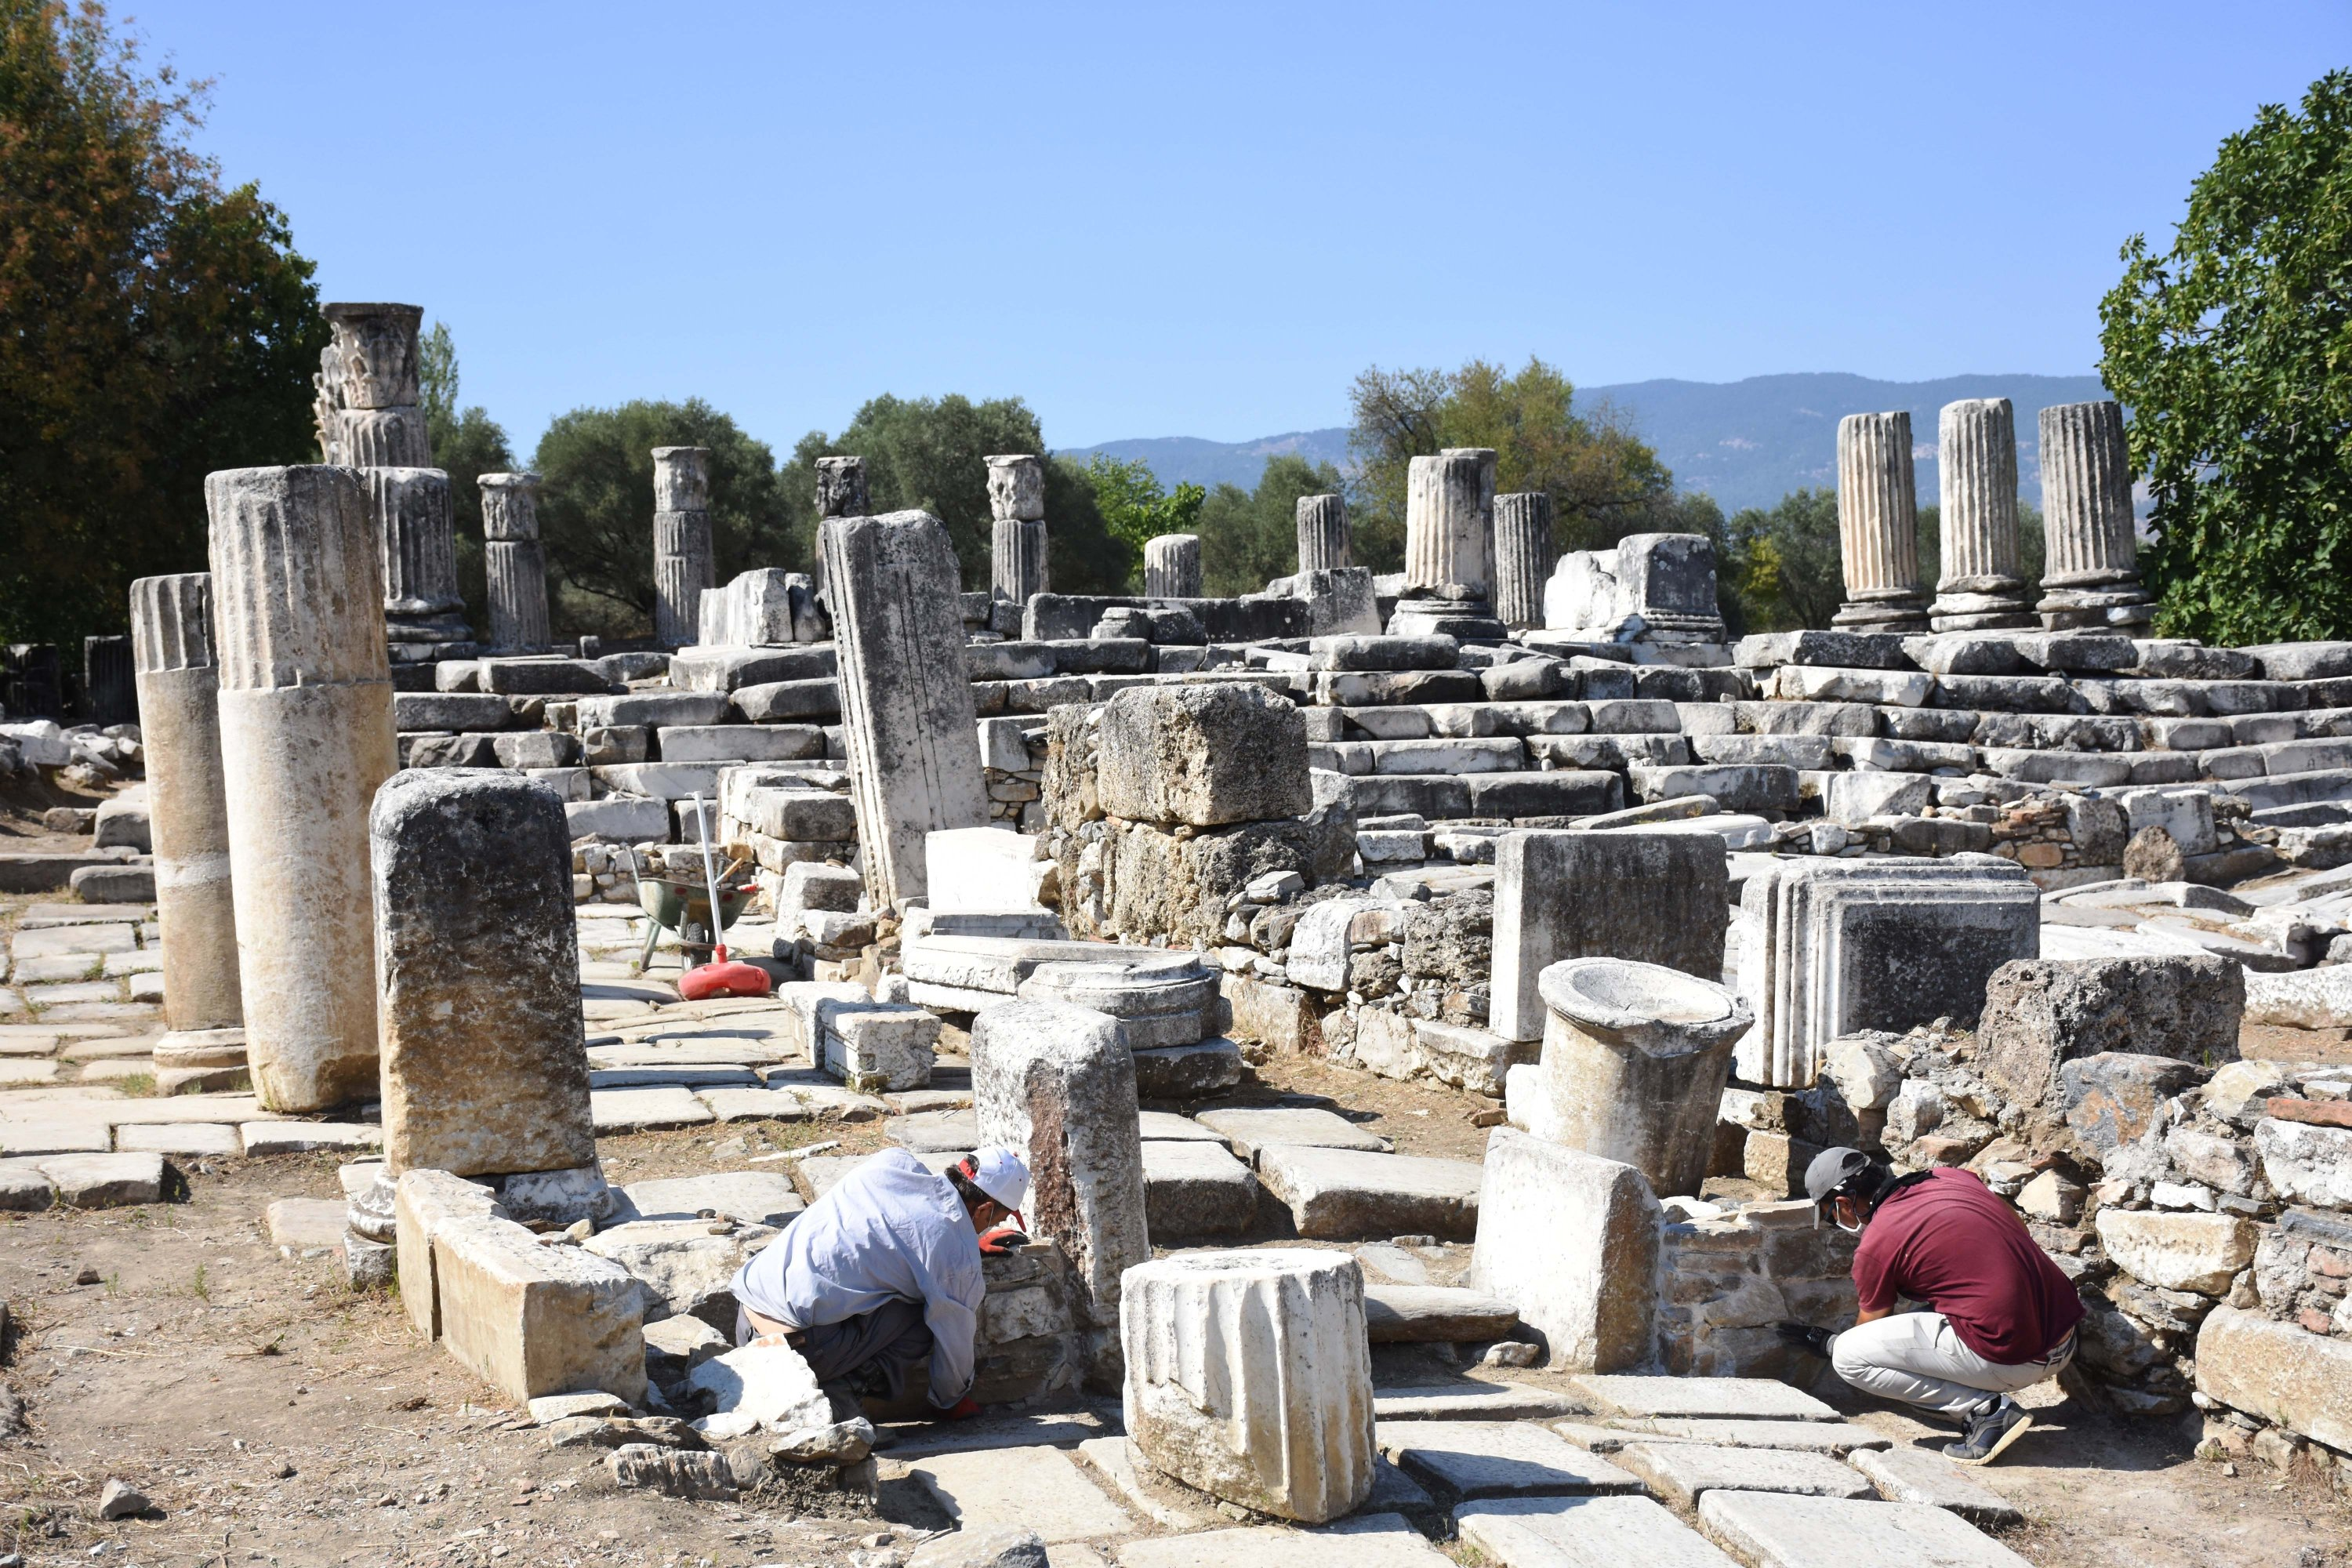 Archaeologists work on historical columns at the Sanctuary of Hecate in Lagina, Muğla province, southwestern Turkey, Sept. 7, 2020. (AA Photo)